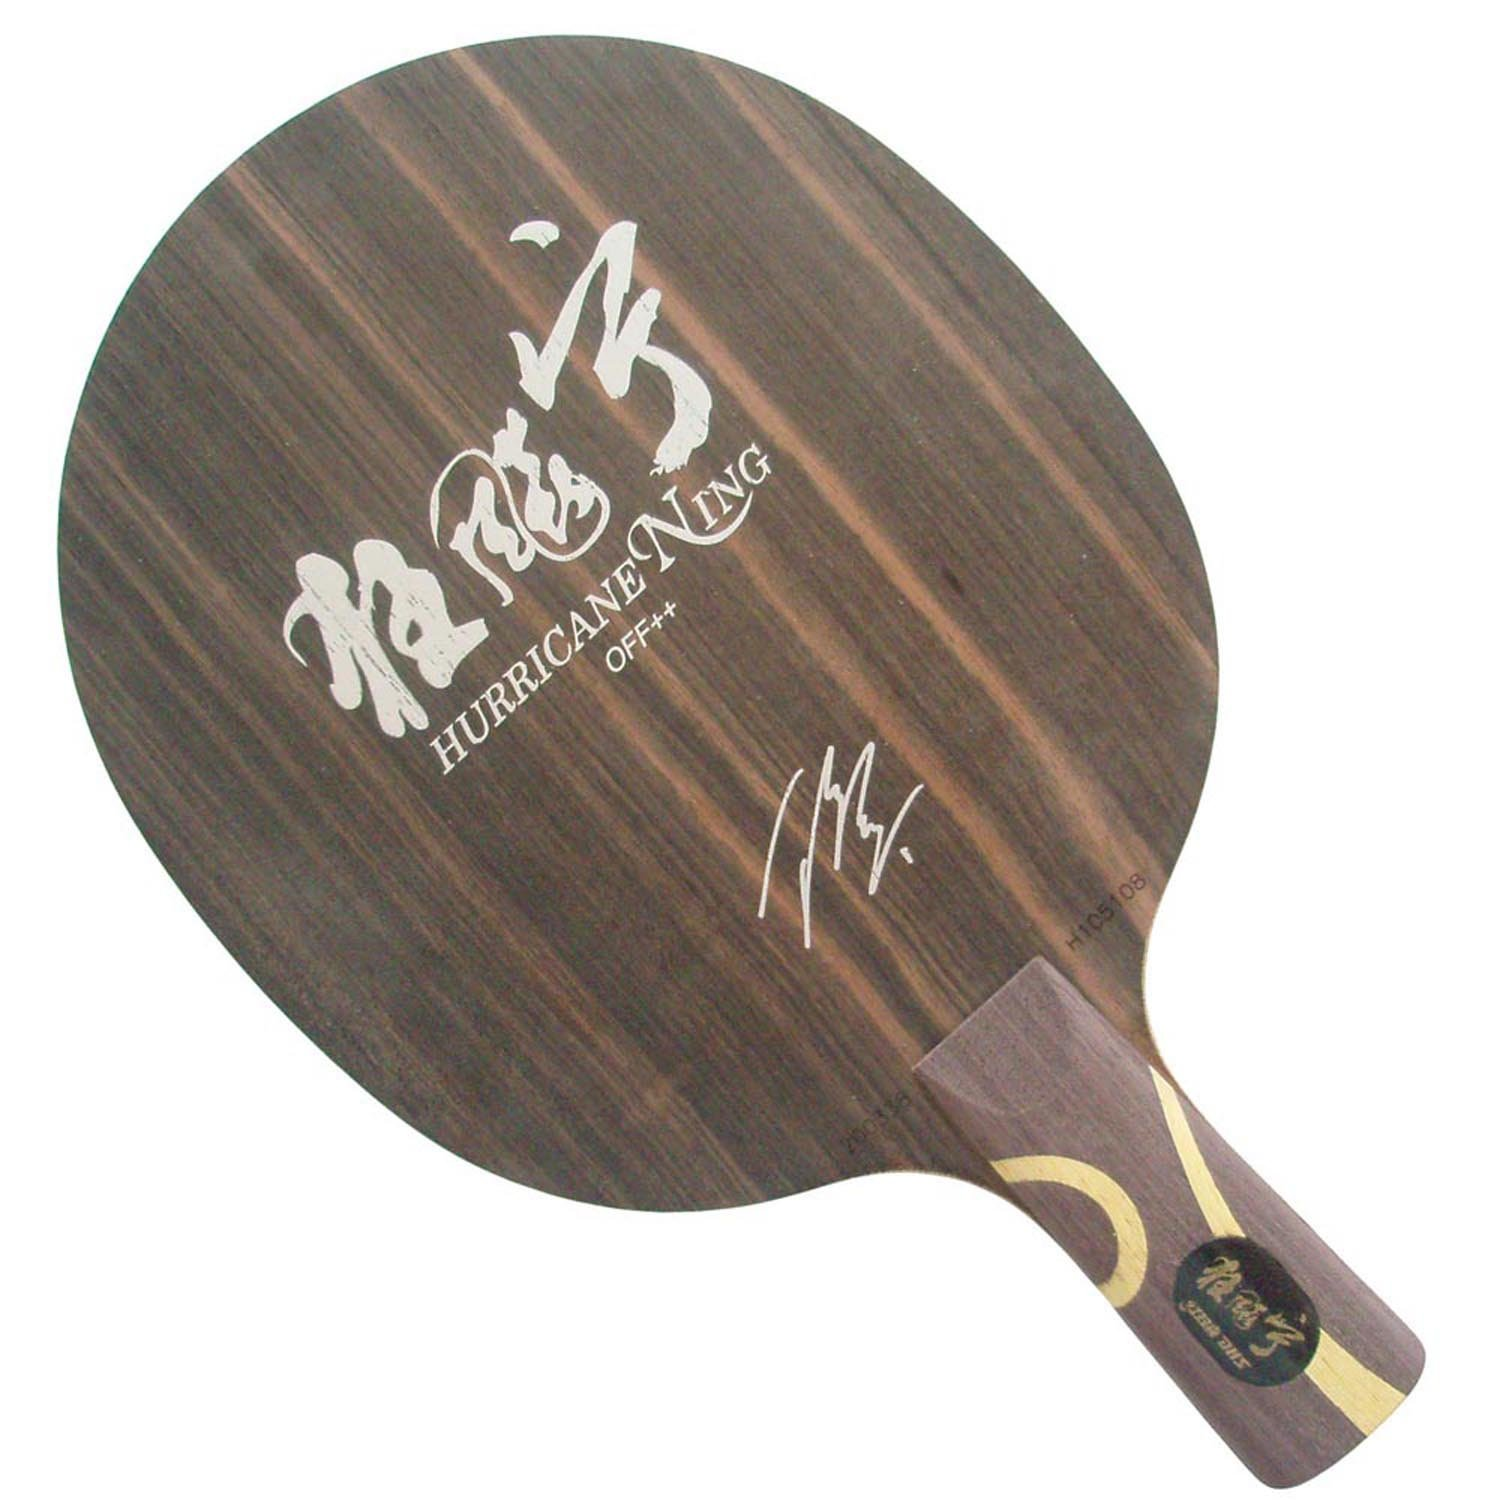 DHS Hurricane Ning 5-Ply OFF++ Table Tennis Blade for Ping Pong Racket, Penhold(Short Handle)-CS pro table tennis ping pong combo paddle racket dhs tg7 cp with tinarc3 and neo skyline tg2 shakehand long handle fl